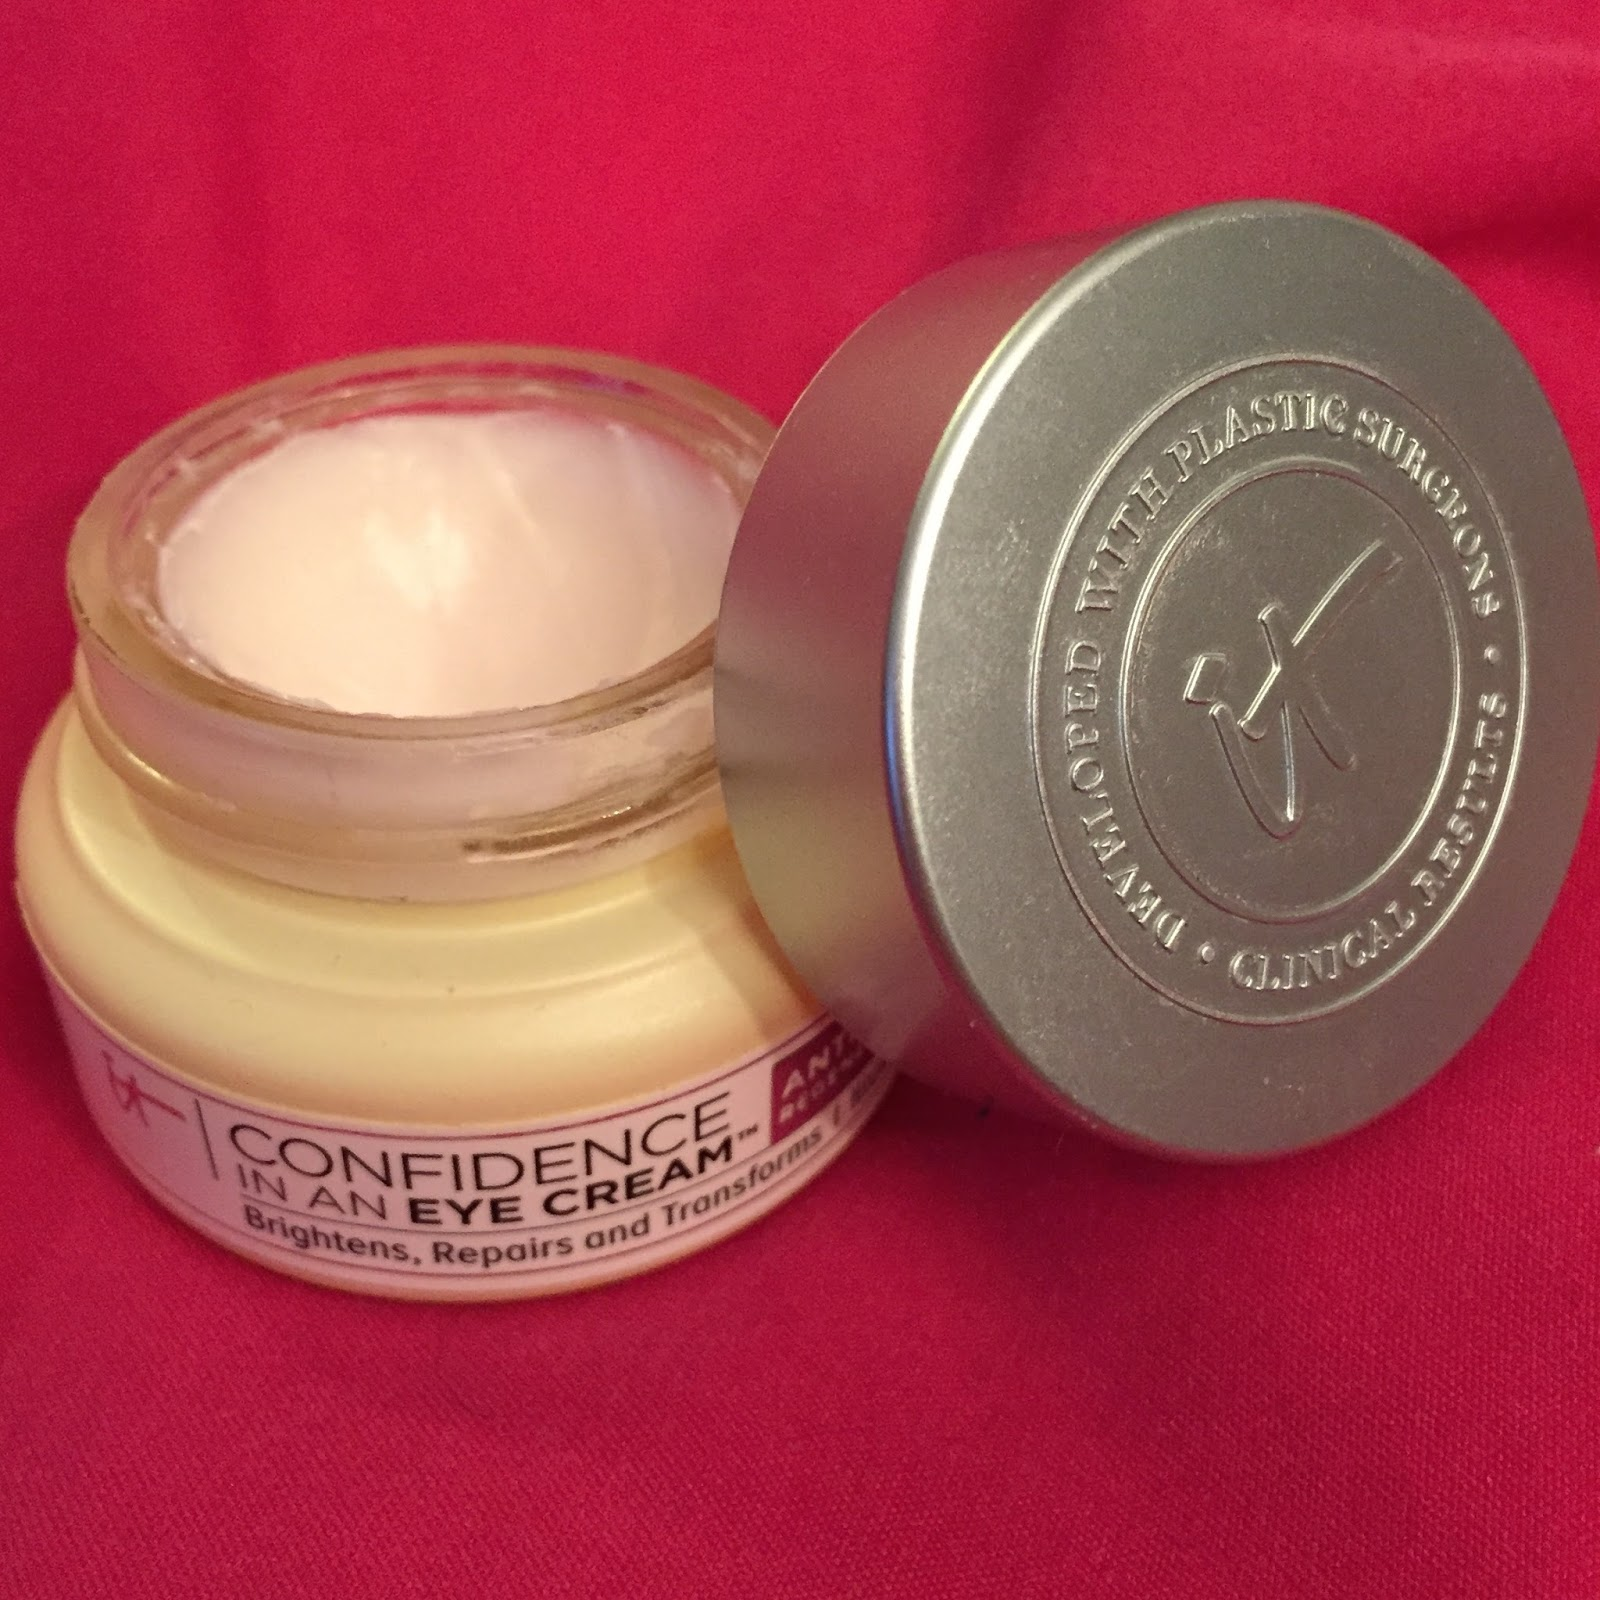 Confidence In An Eye Cream by IT Cosmetics #12